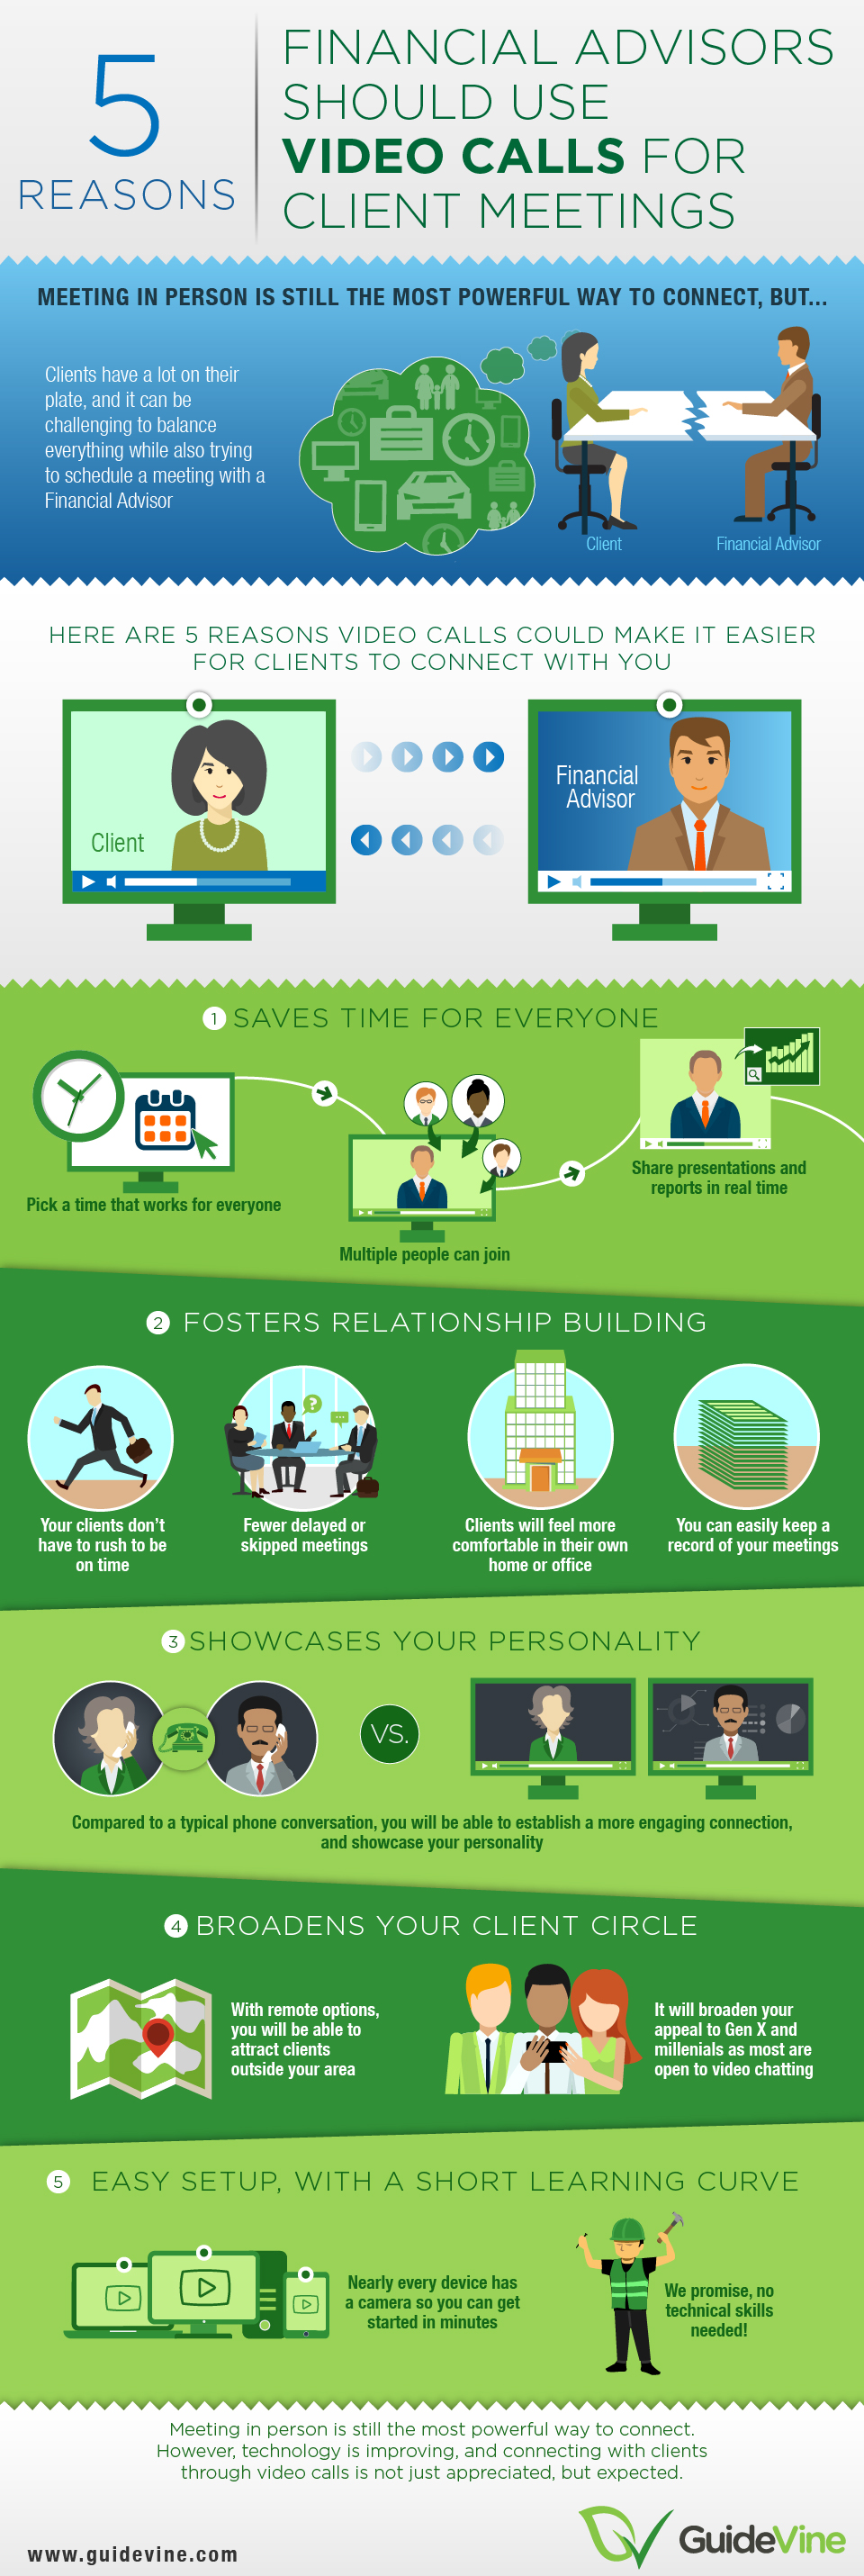 Infographic: 5 Reasons Financial Advisors Should Use Video Calls for Client Meetings